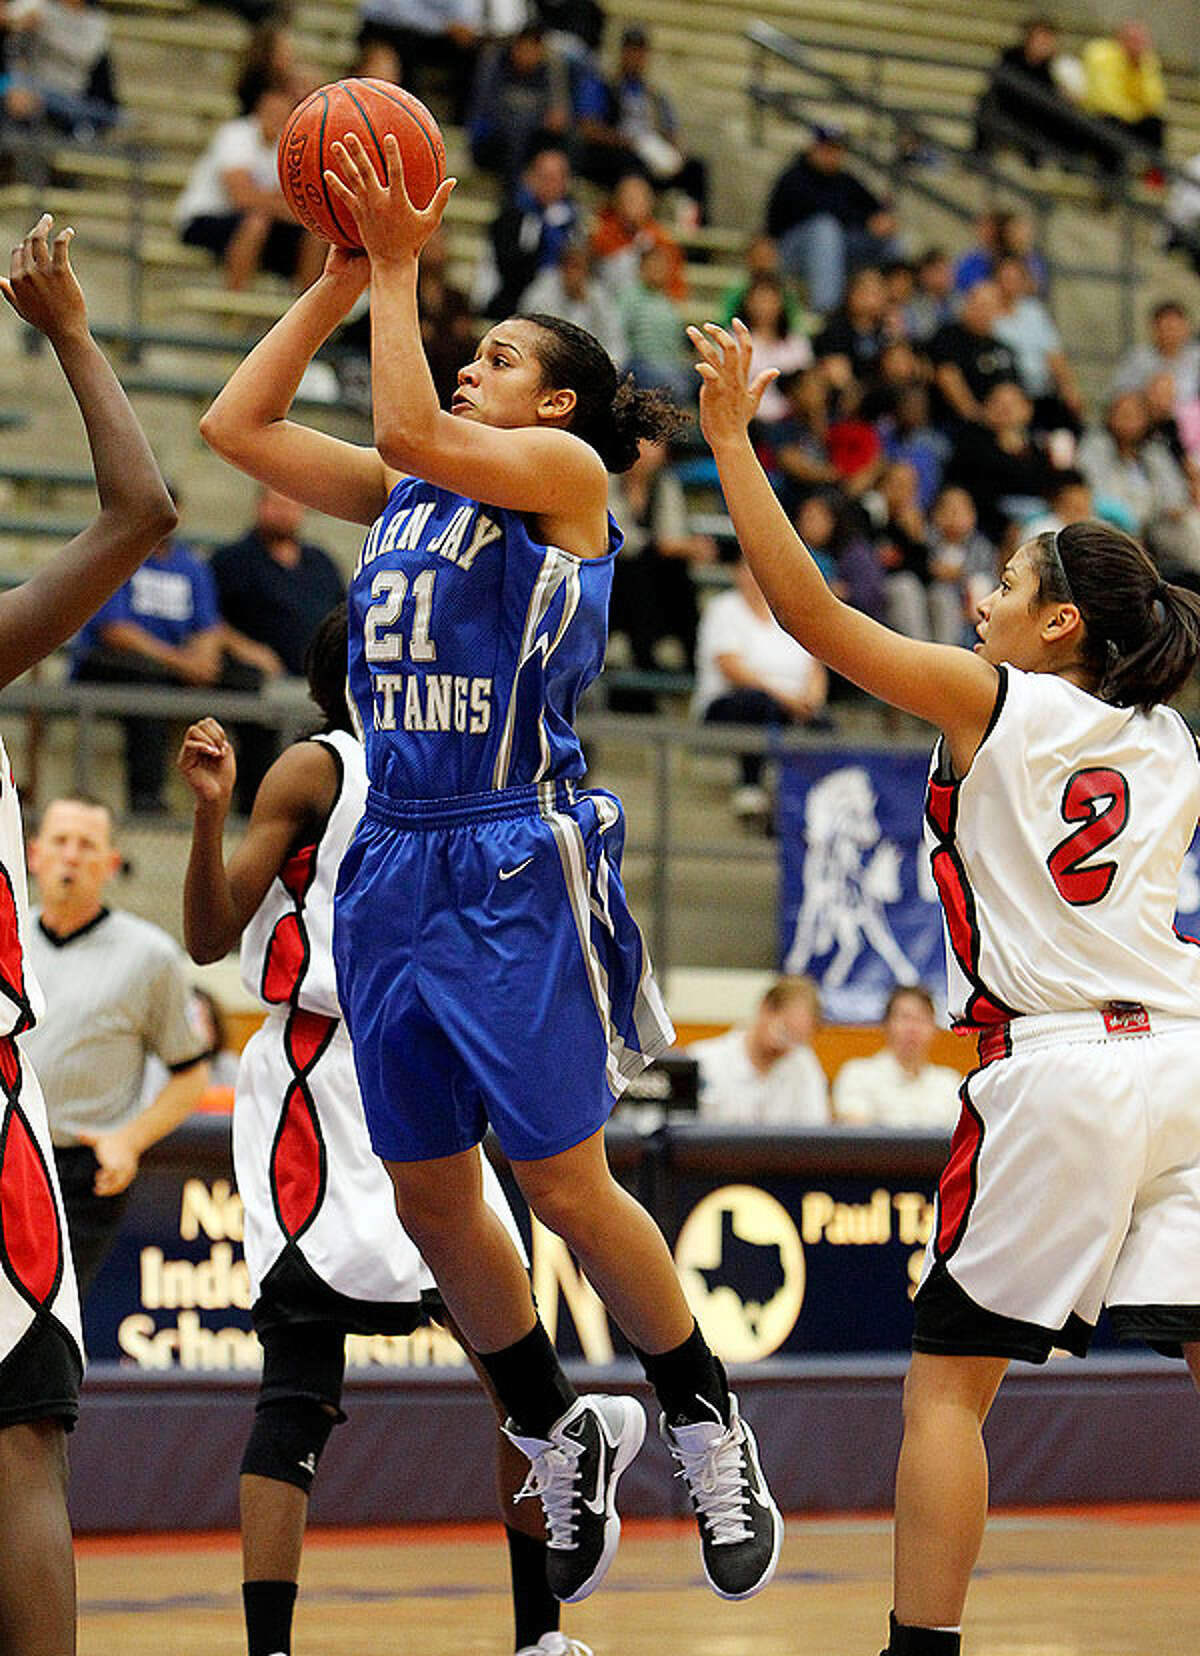 Jay's Erica Donovan (21) takes a shot against Stevens' Alexis Sendejo (02) in girls basketball at Paul Taylor Fieldhouse on Tuesday, Dec. 14, 2010. Jay defeated Stevens, 59-53.